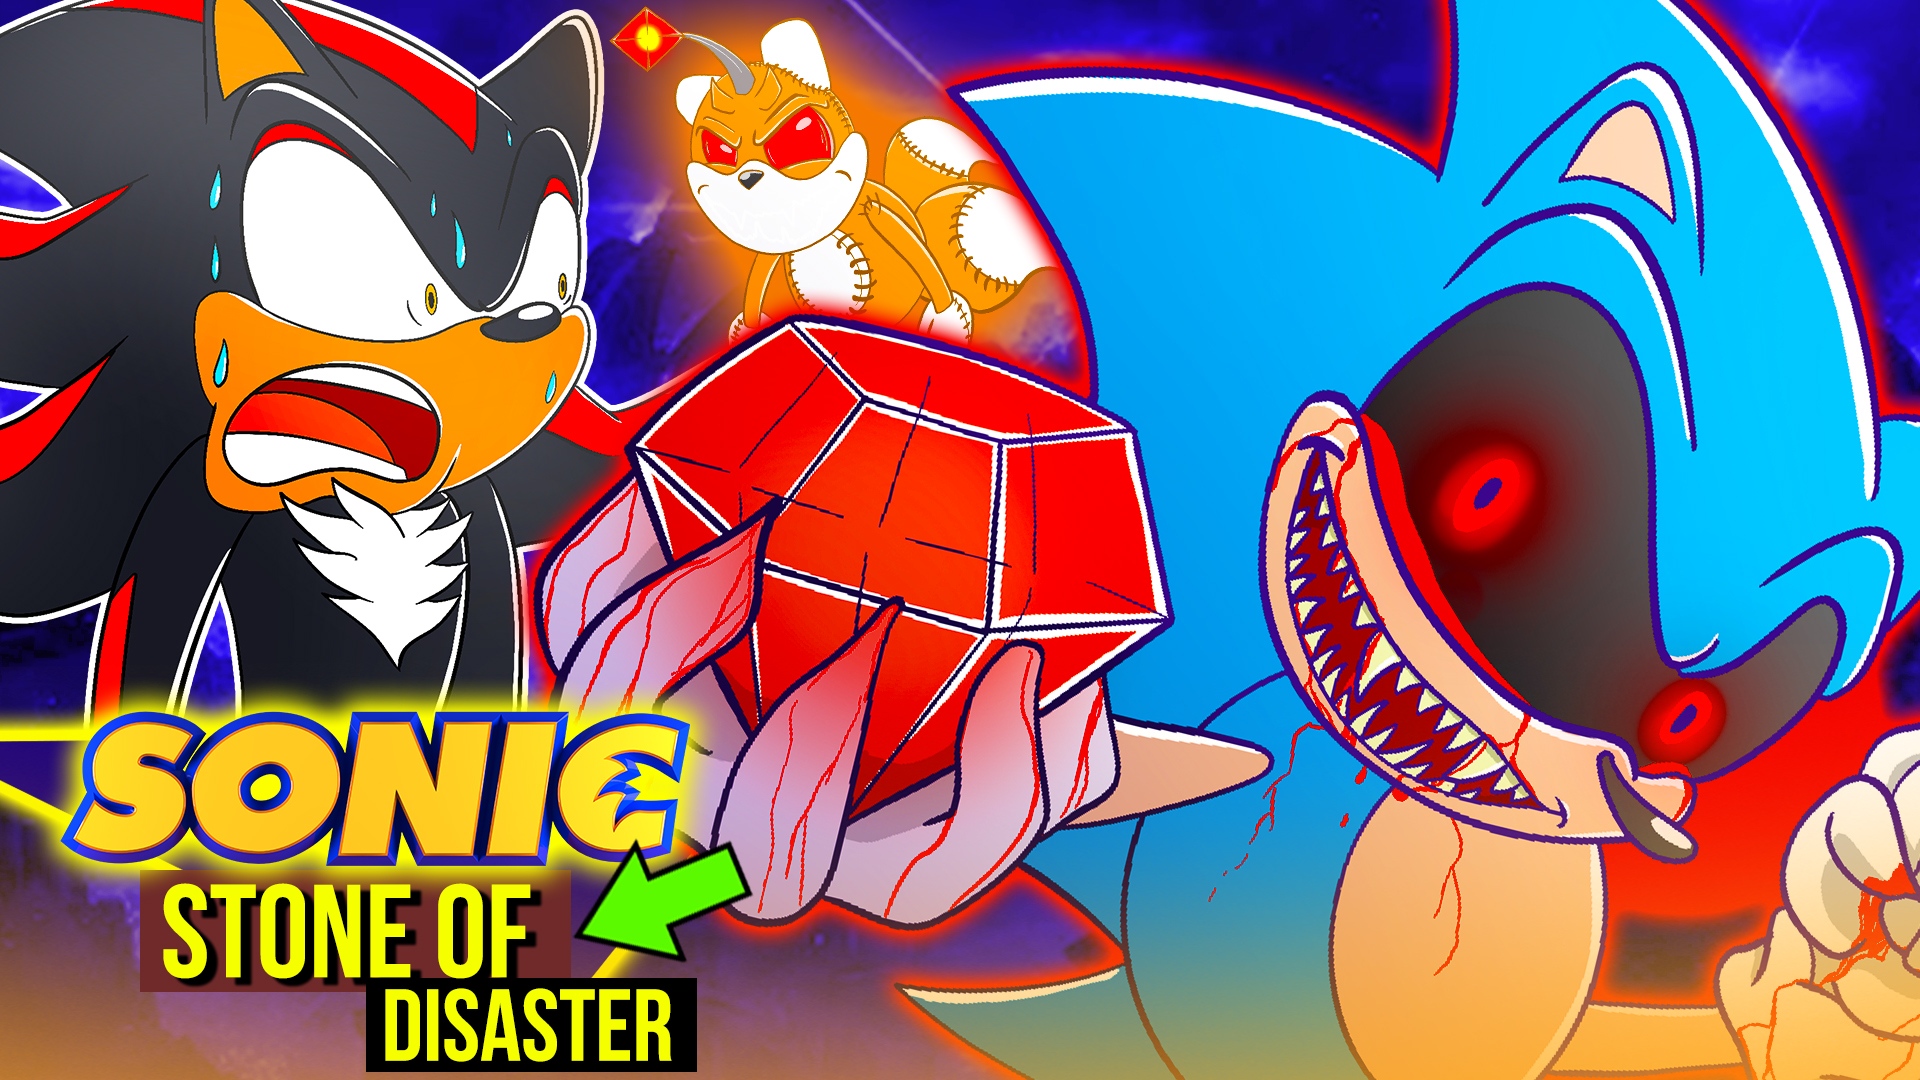 SONIC Stone of Disaster